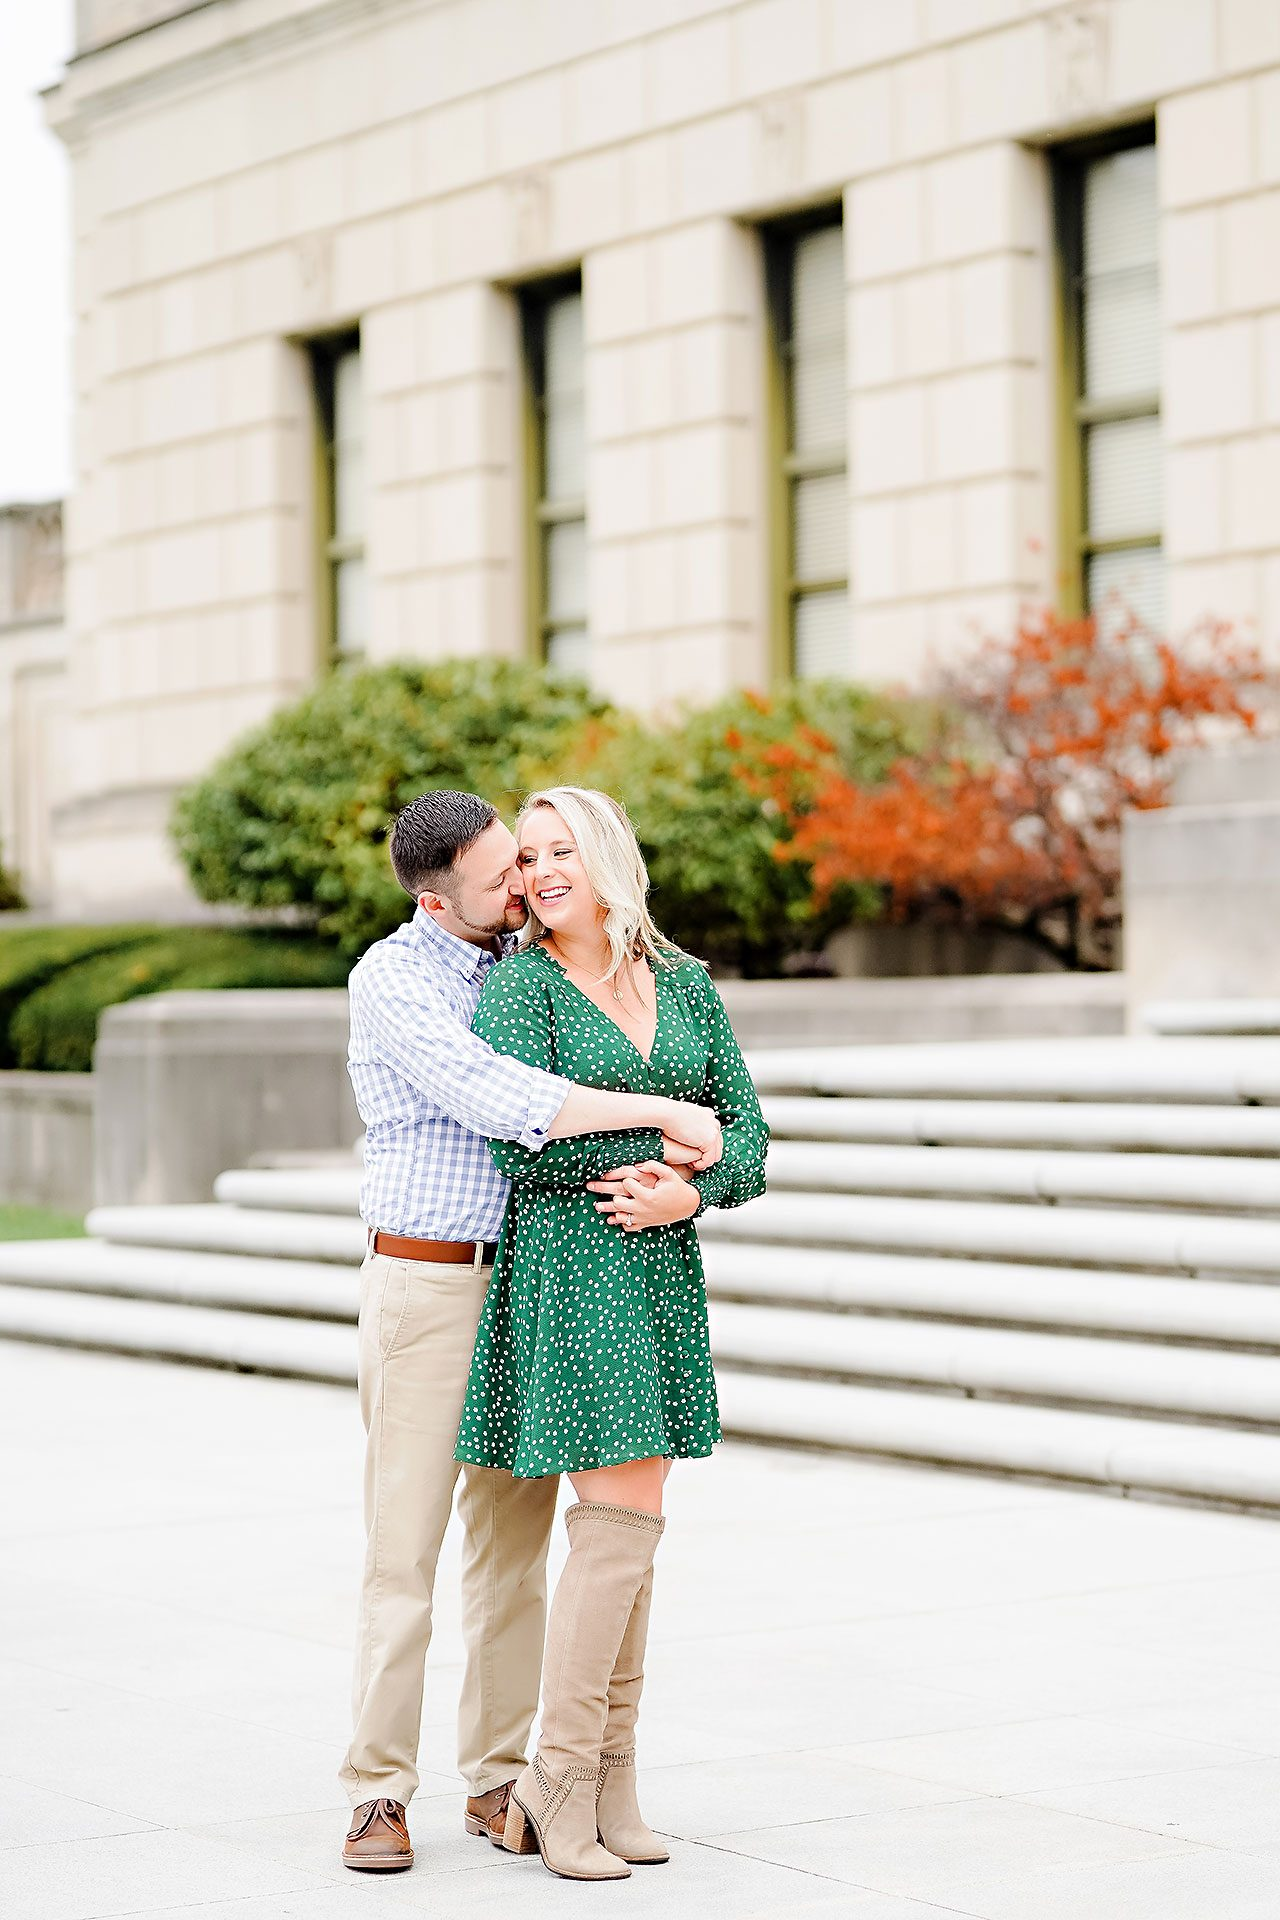 Kristen Jonny Indianapolis Downtown Engagement Session 048